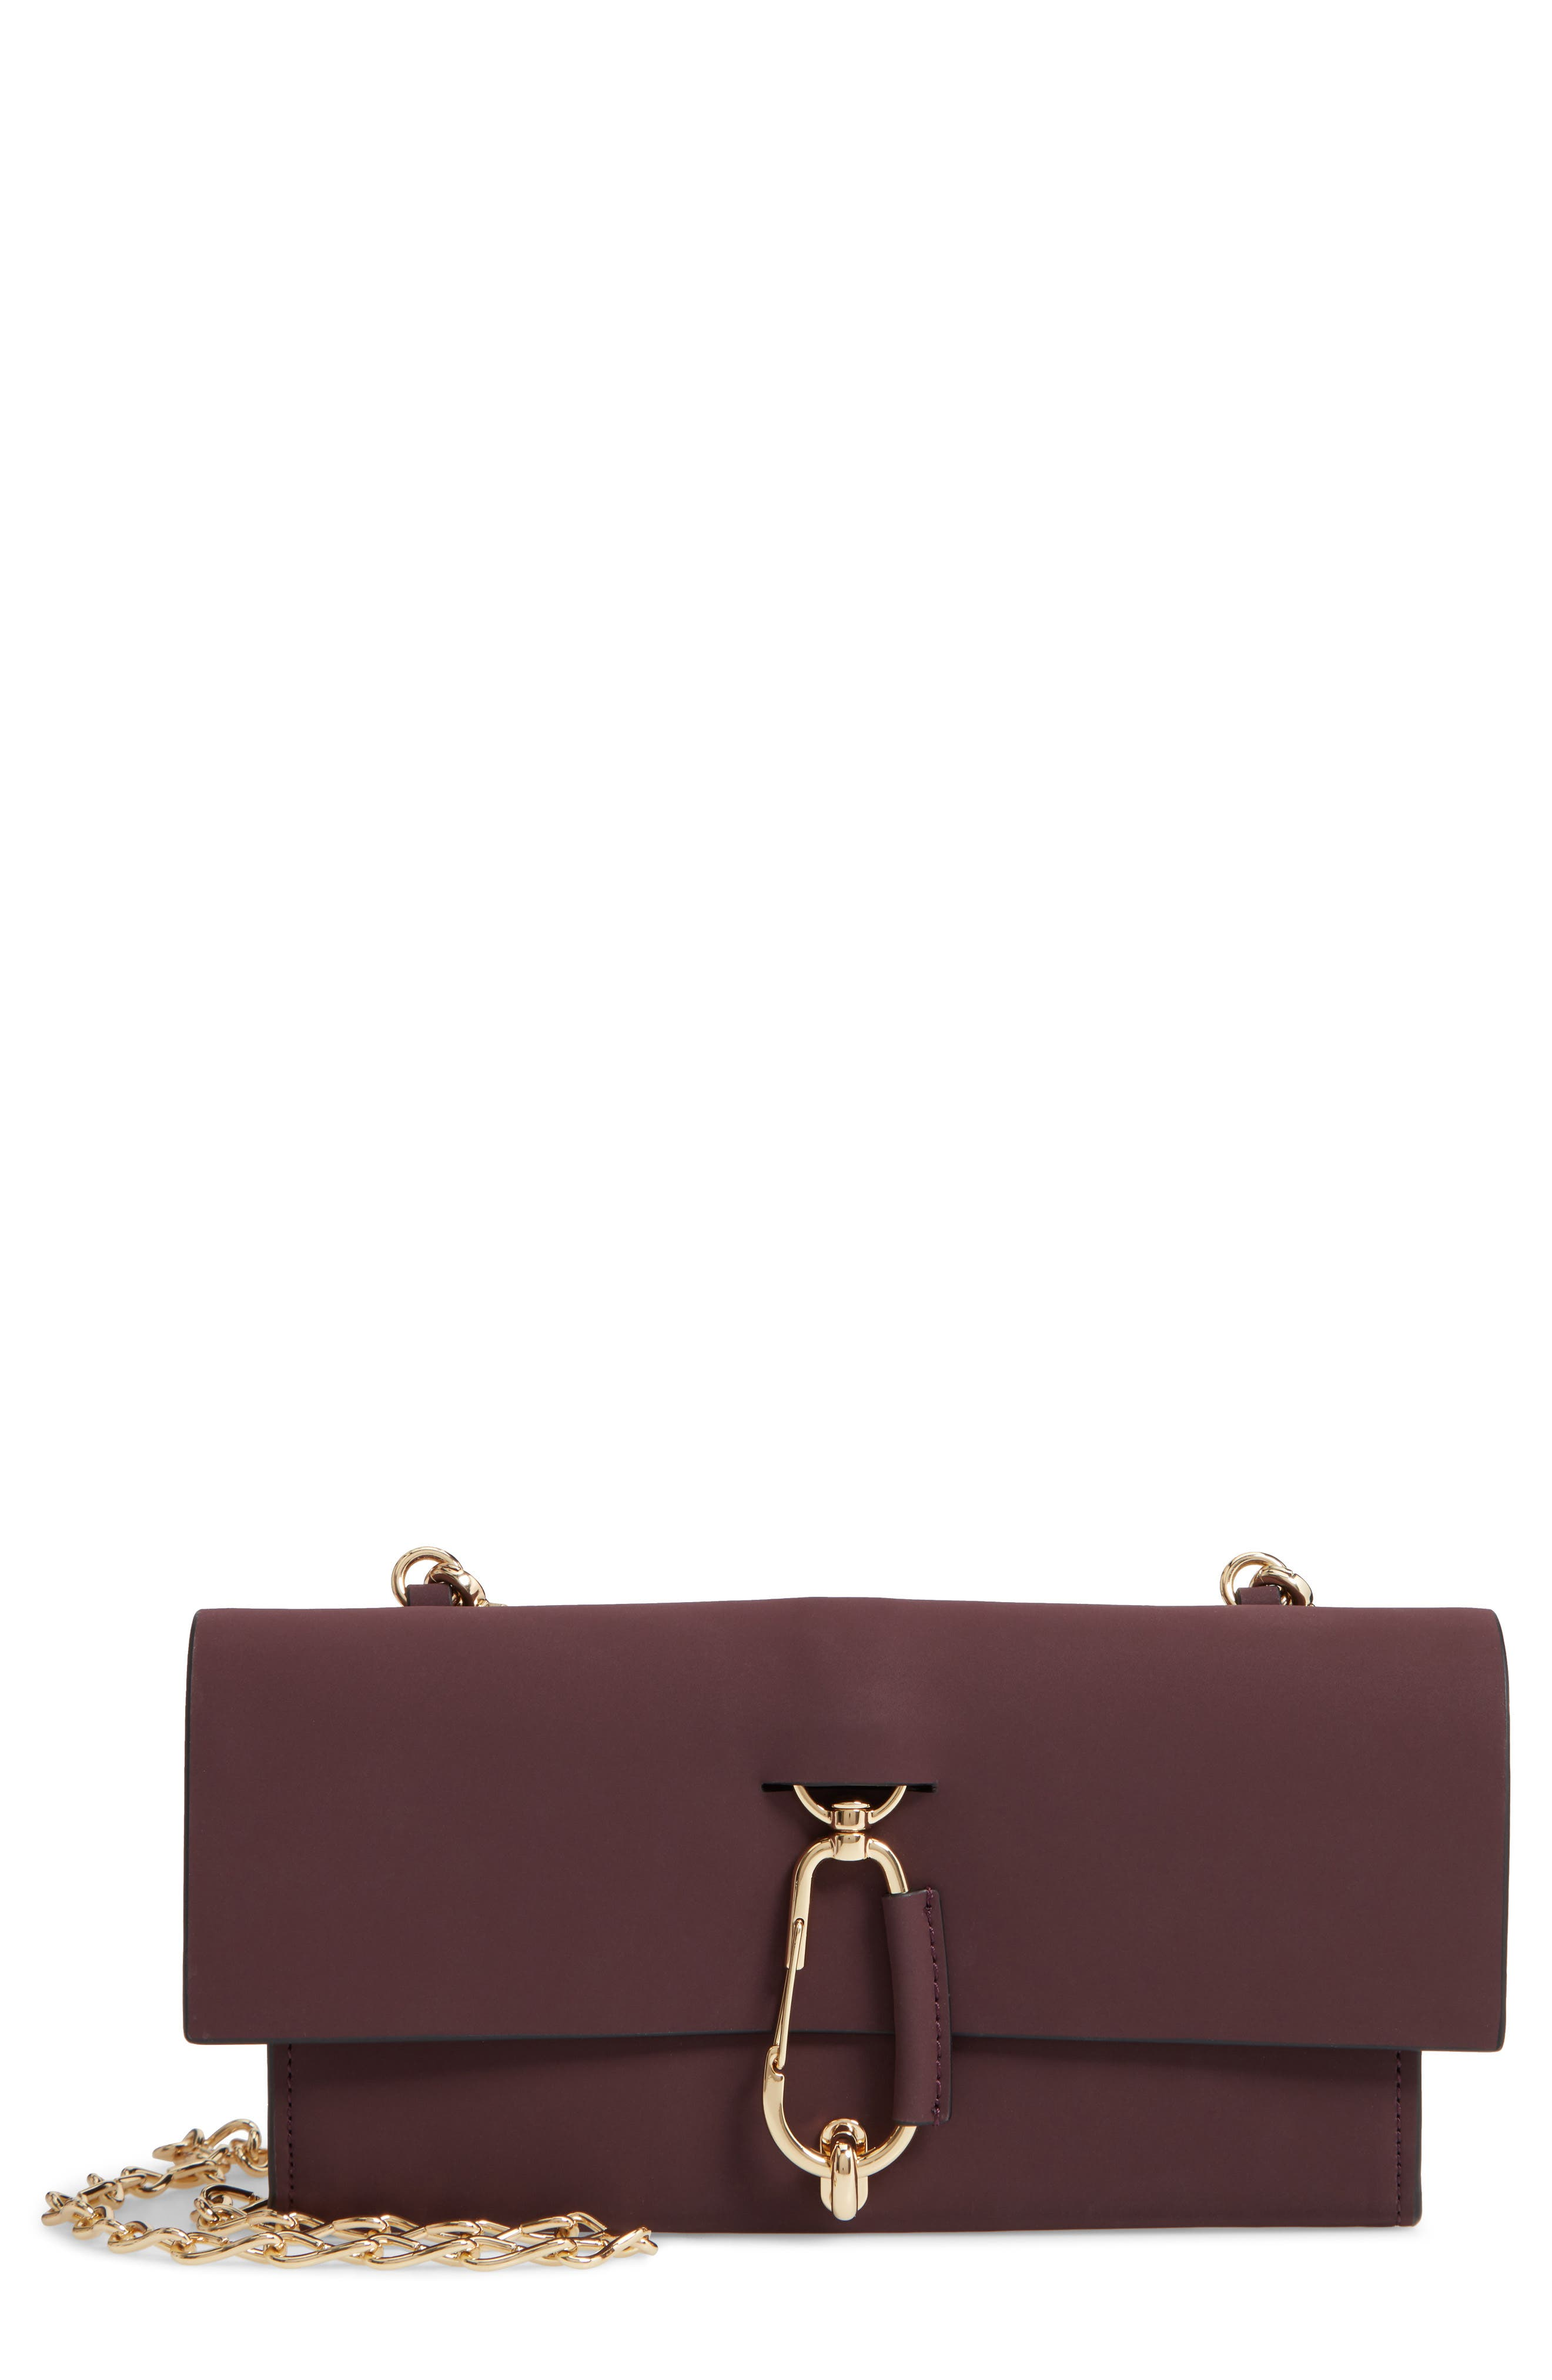 Belay Convertible Leather Clutch,                             Main thumbnail 1, color,                             VINEYARD